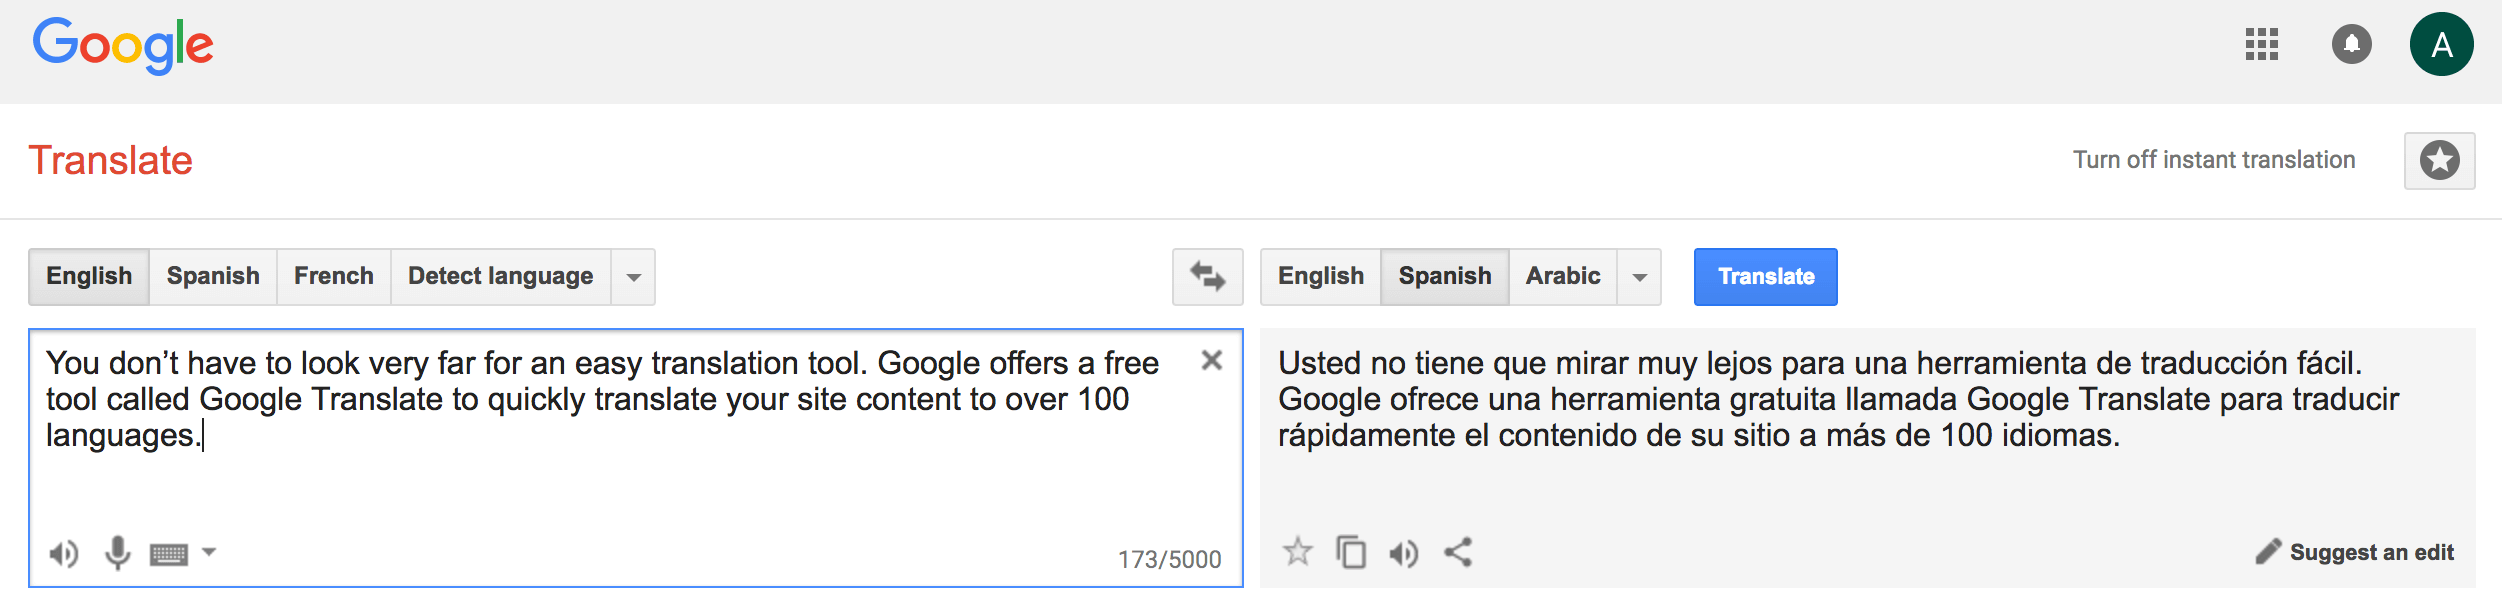 Google Translate Crazy Egg